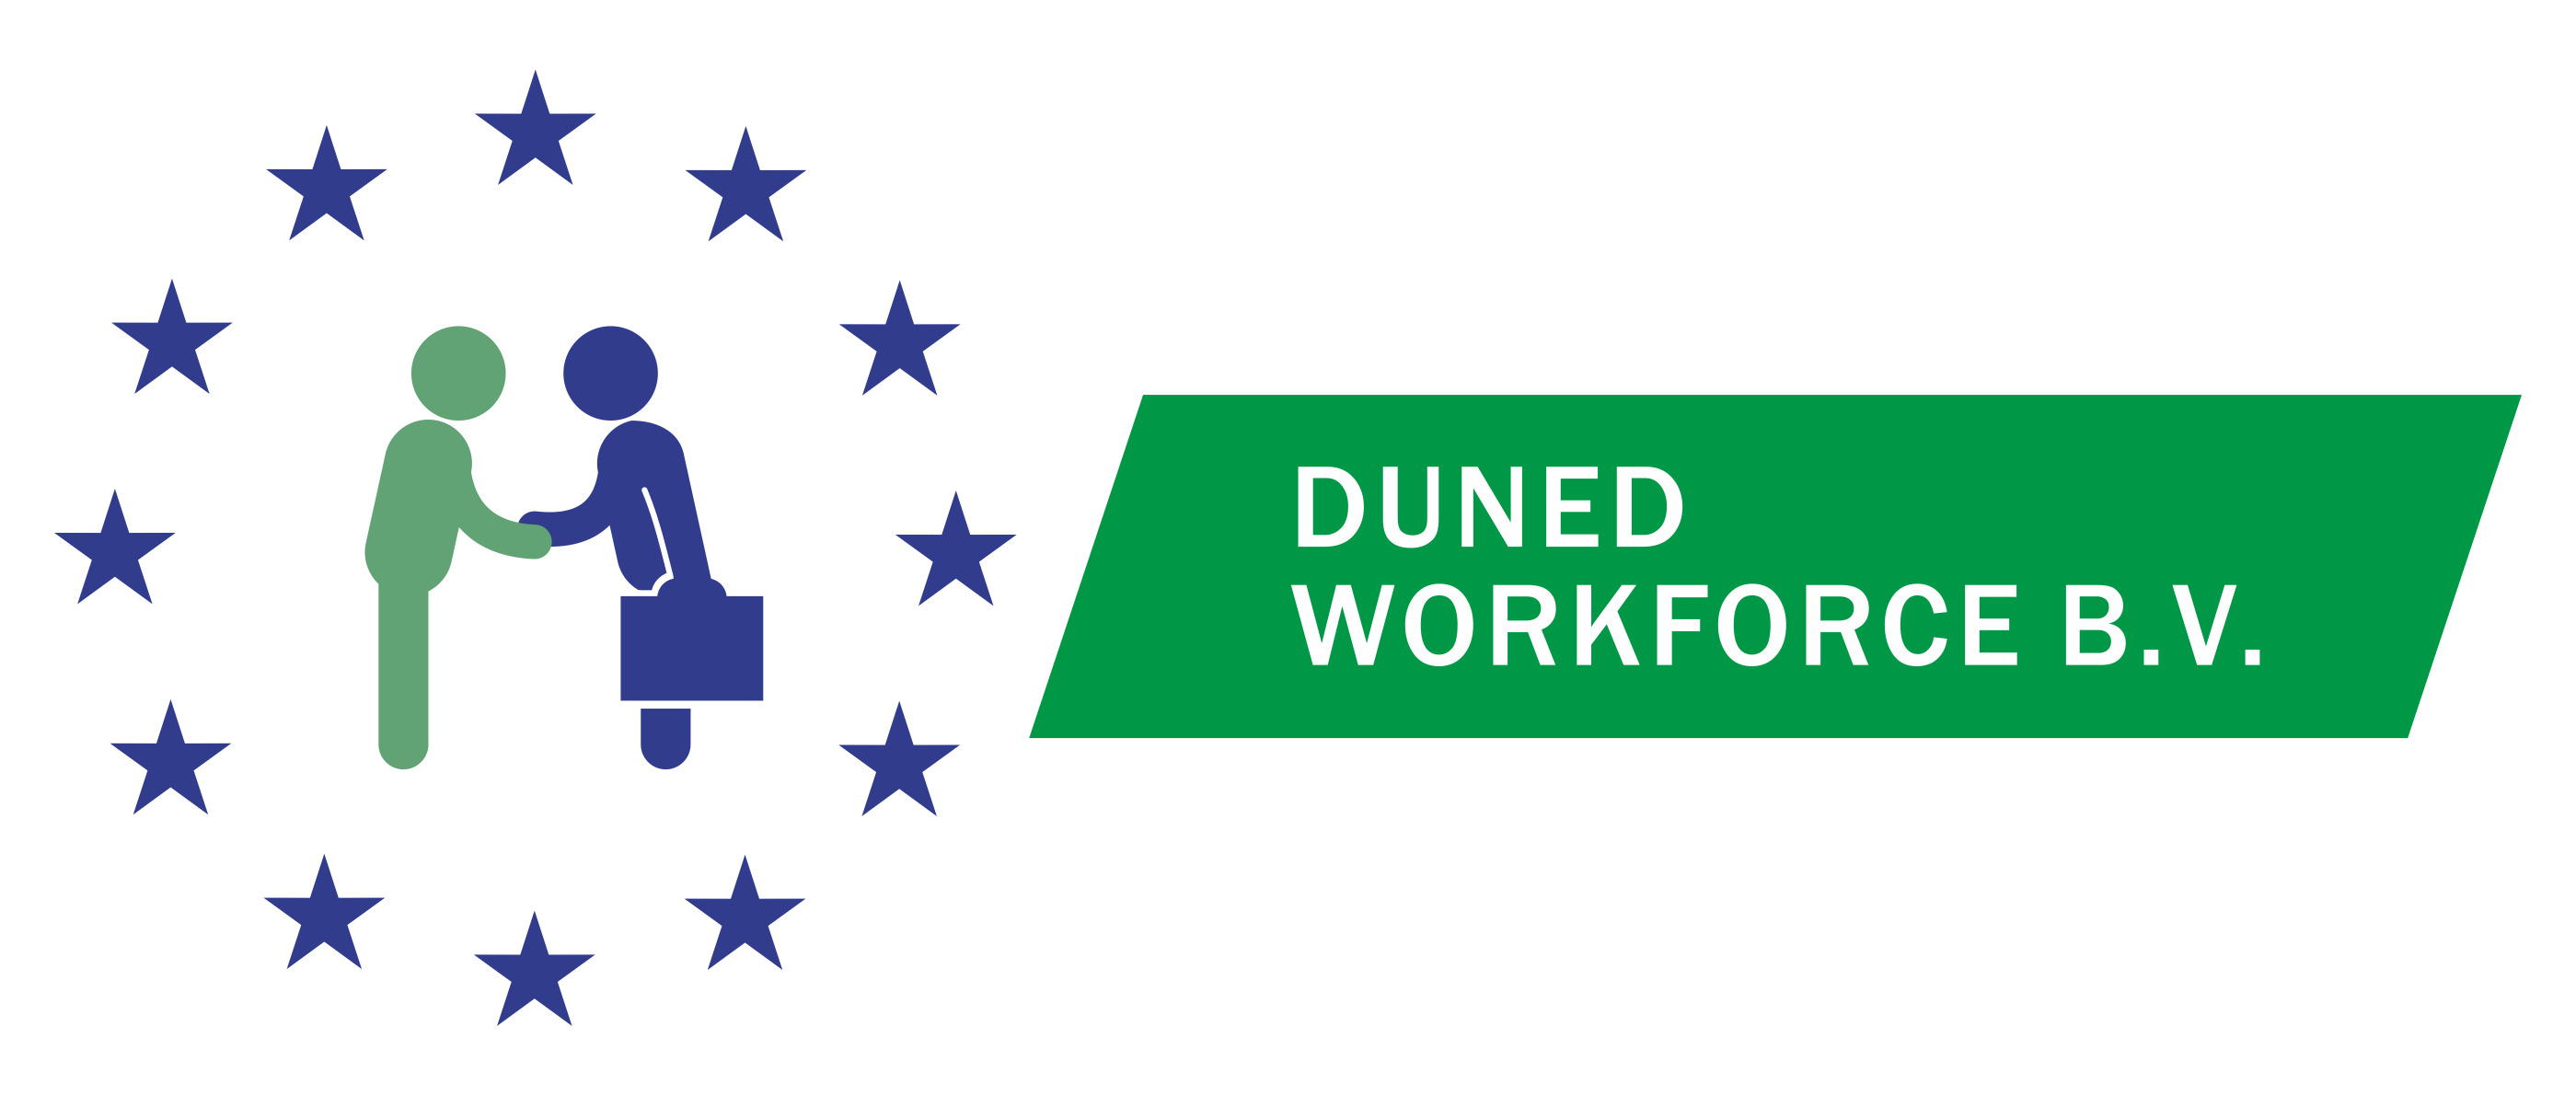 DUNED WORKFORCE